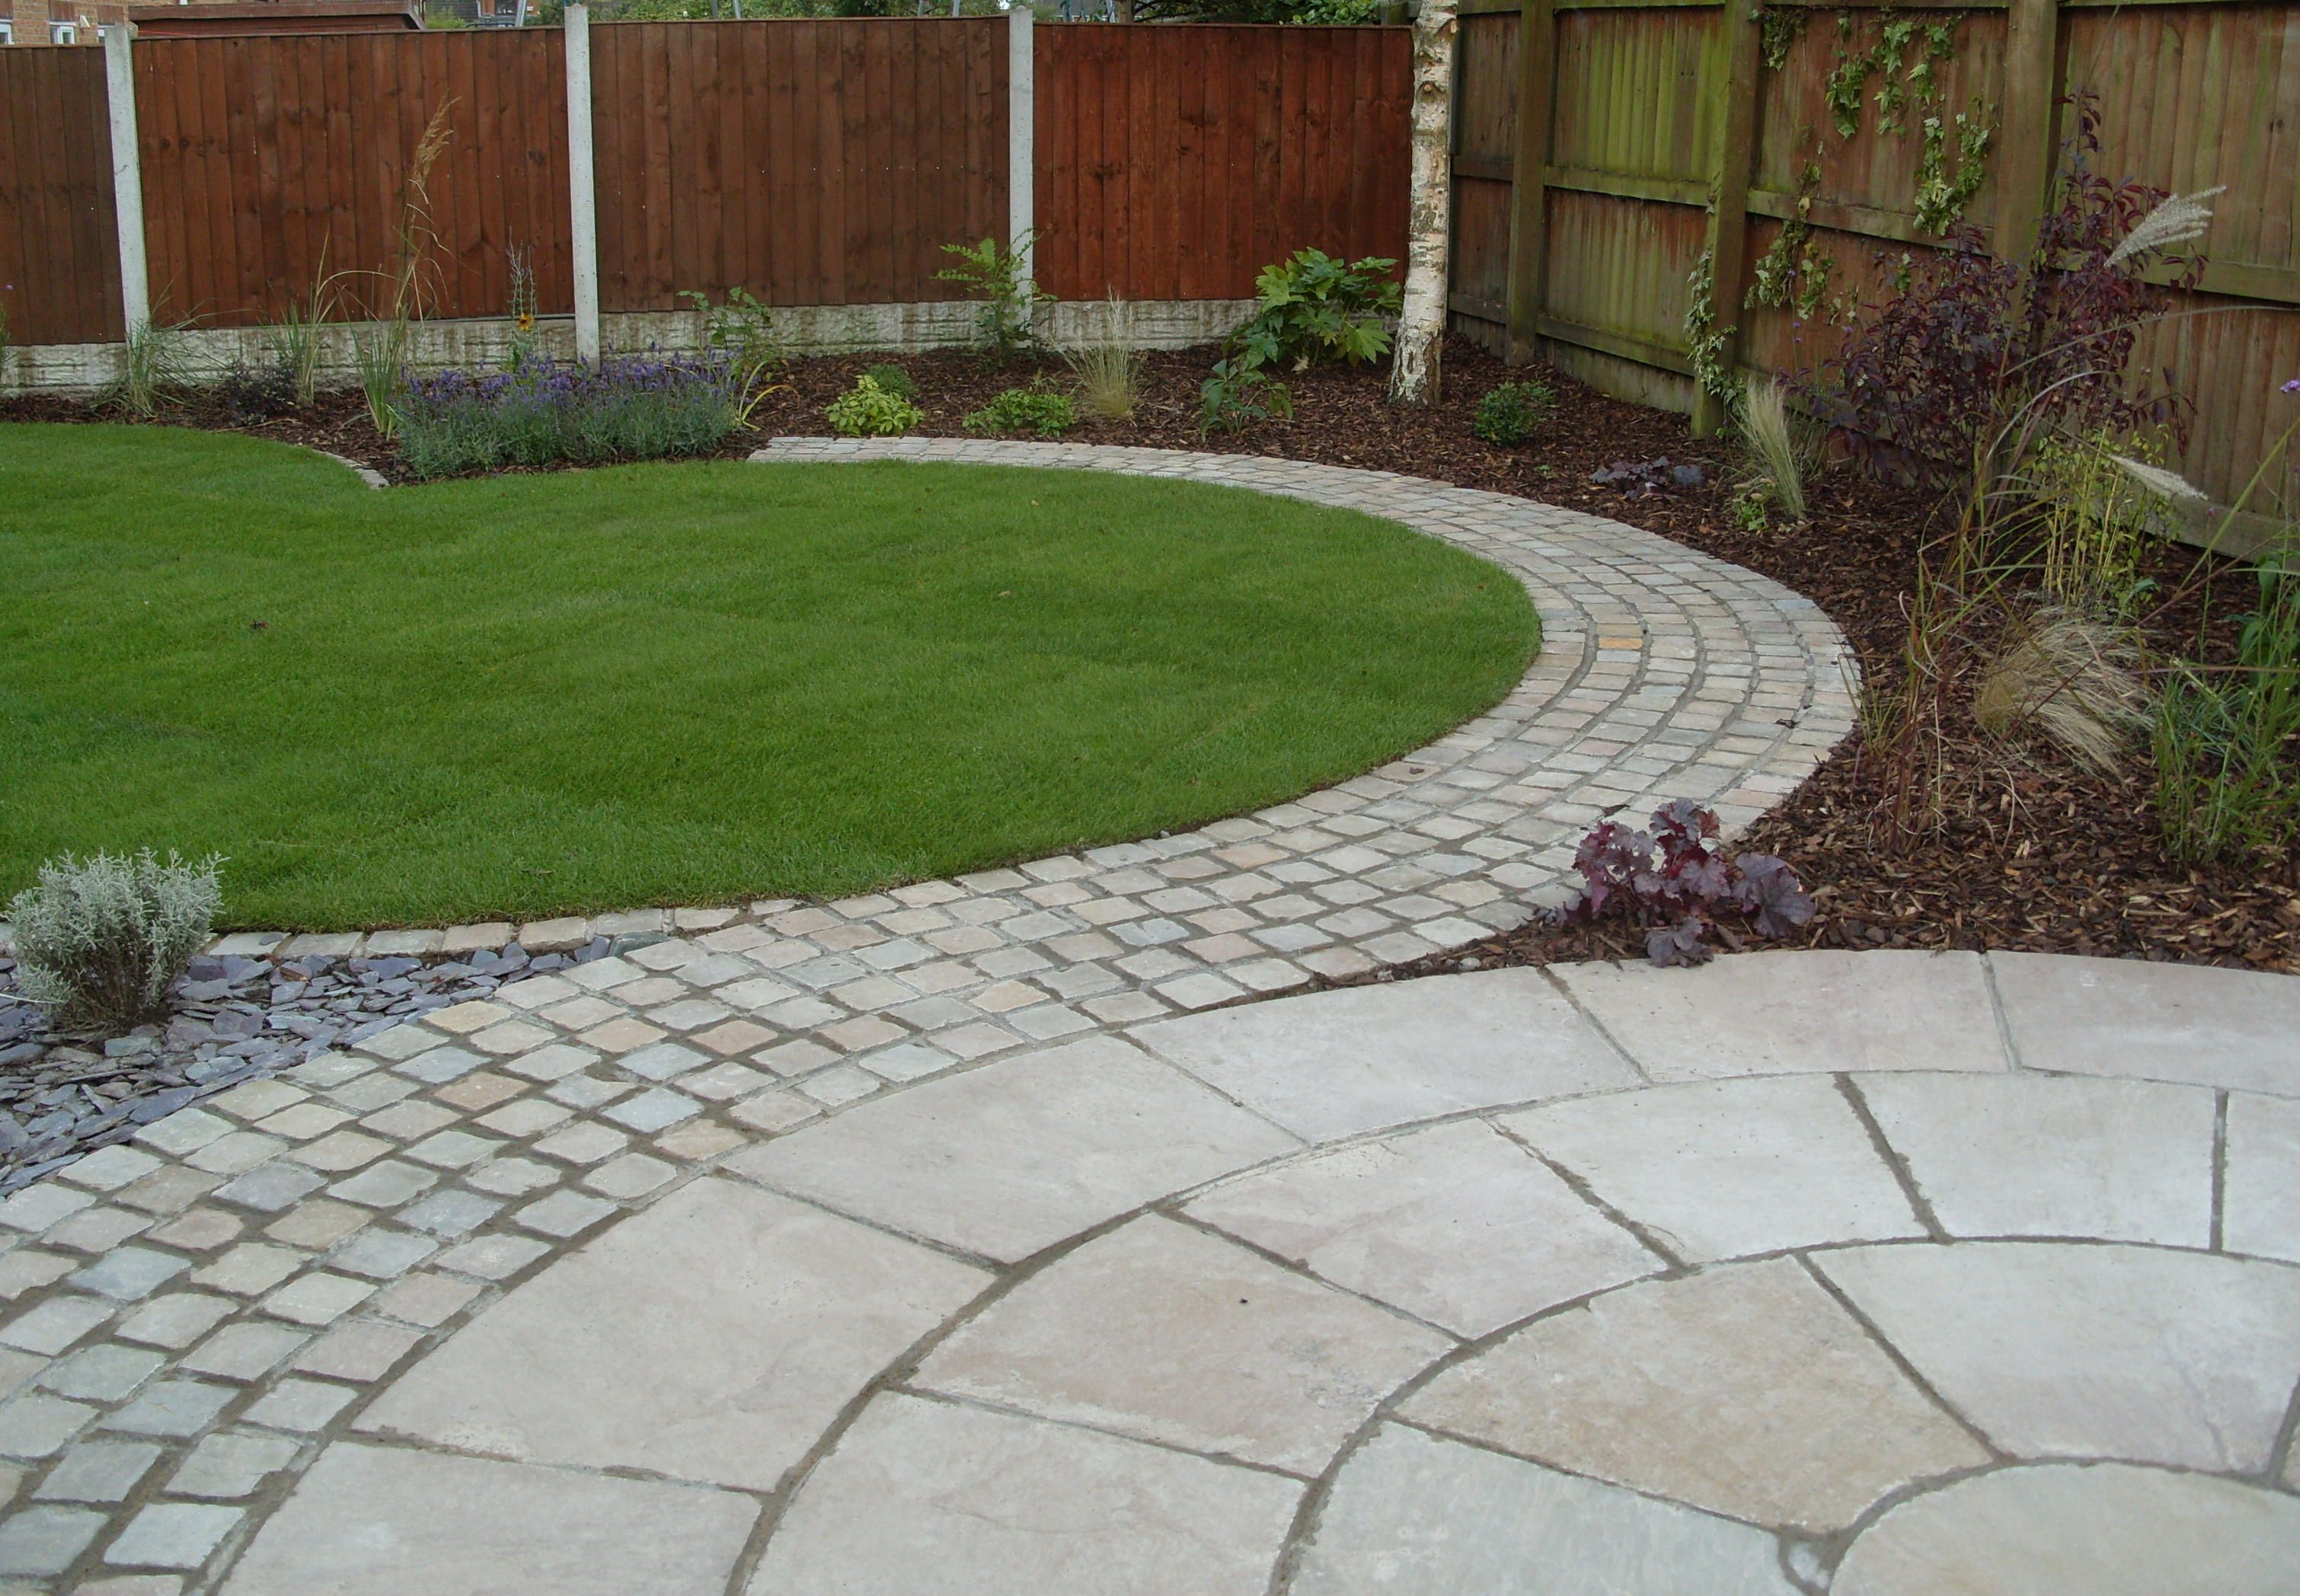 Patio Garden Design interesting design for what is pretty much no yard small garden design will be Garden Ideas Garden Design Patio With Wooden Pattern Fence And Round Concrete Tiles Adorable Garden Design Patio To Create An Adorable Backyard Decoration